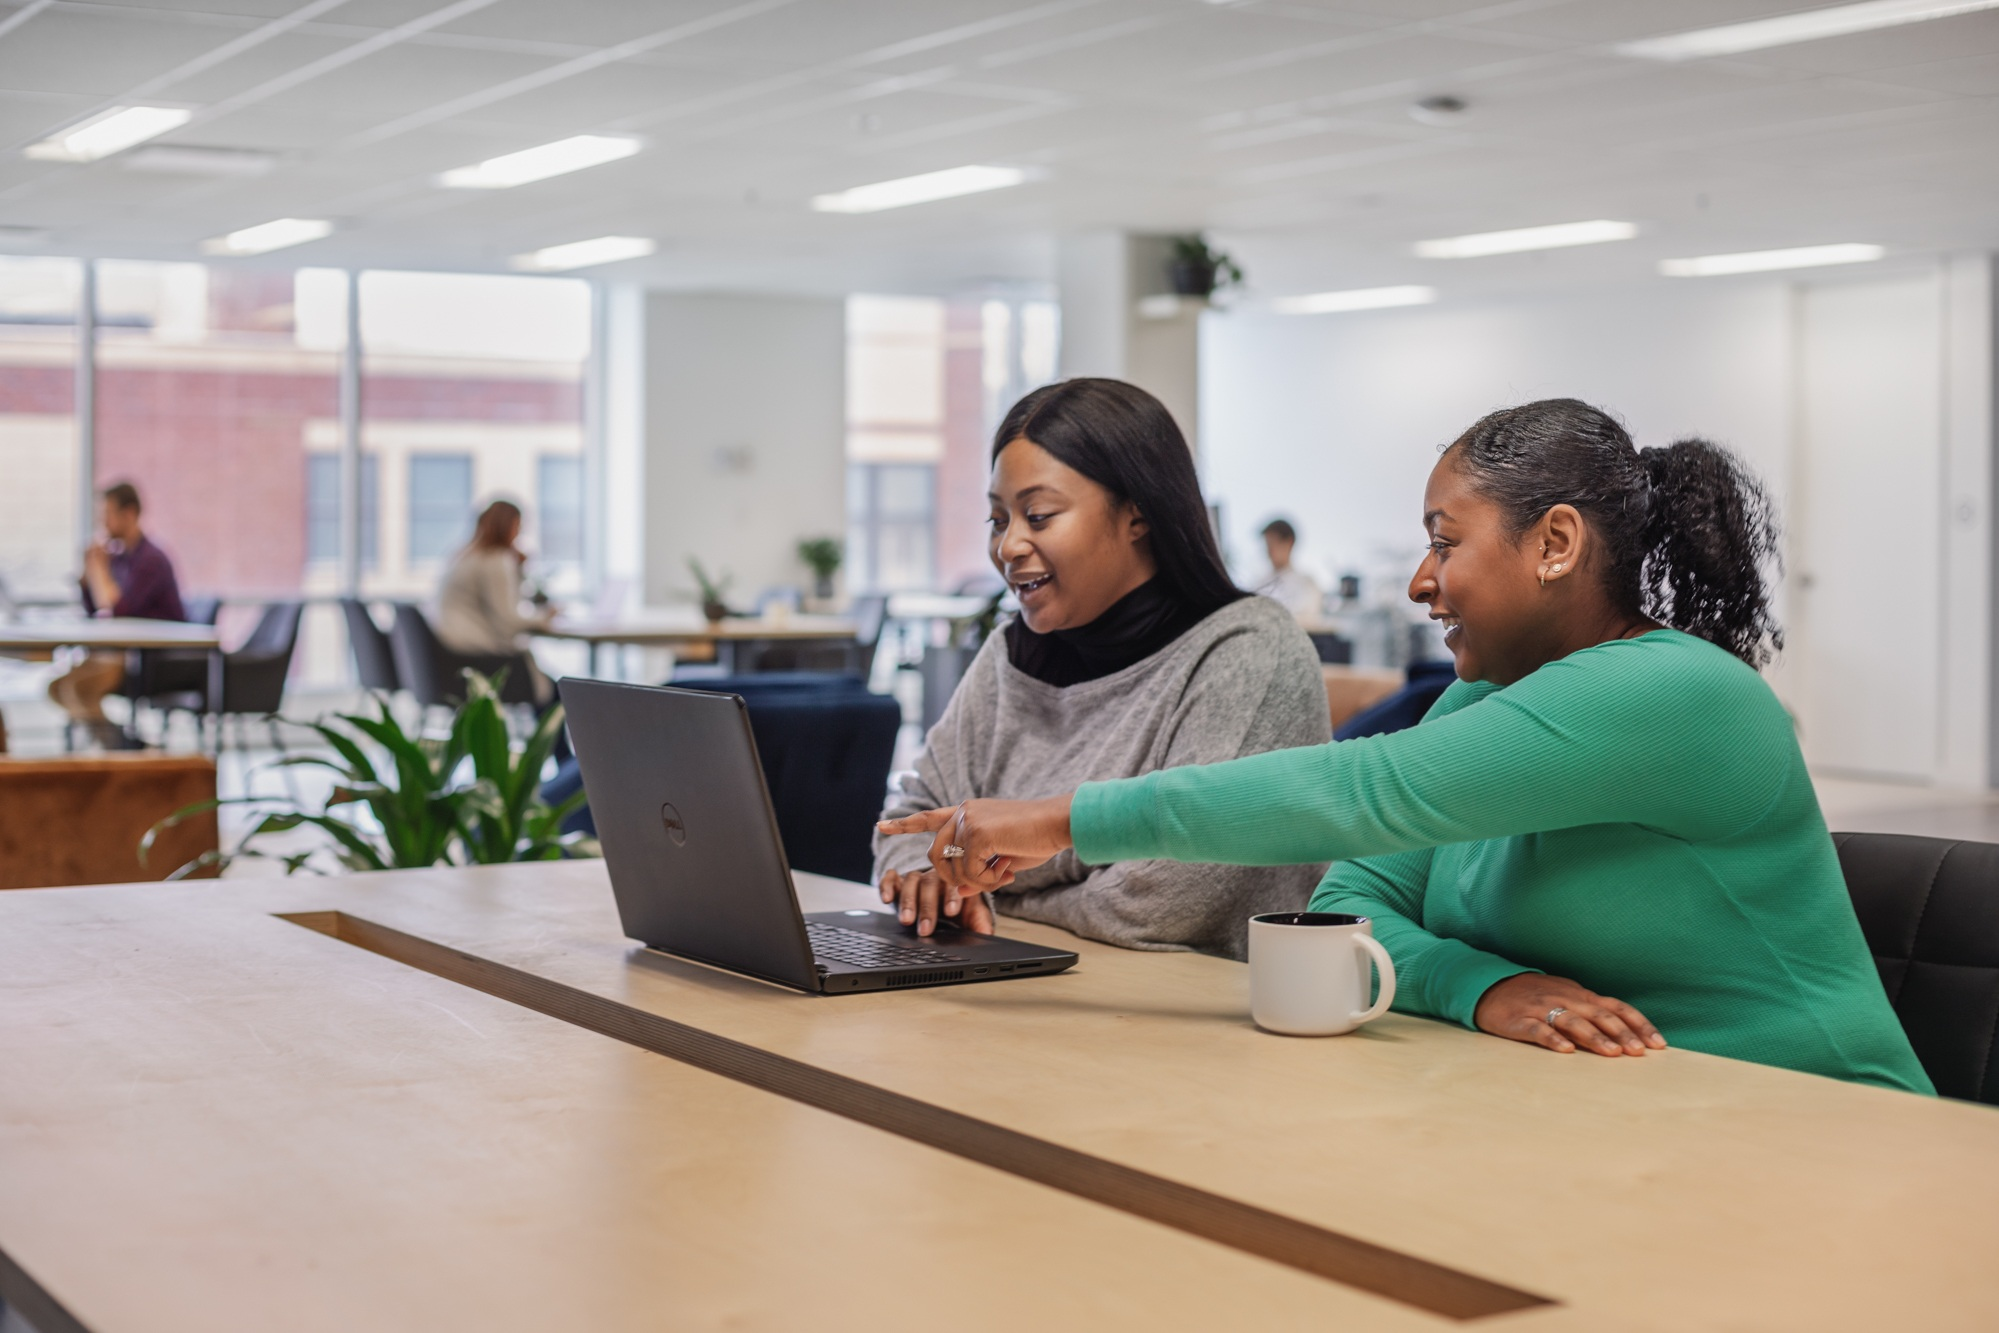 Open Desk - From $10/dayWork where you feel like it. We offer different settings to choose where you will be more productive. Learn more